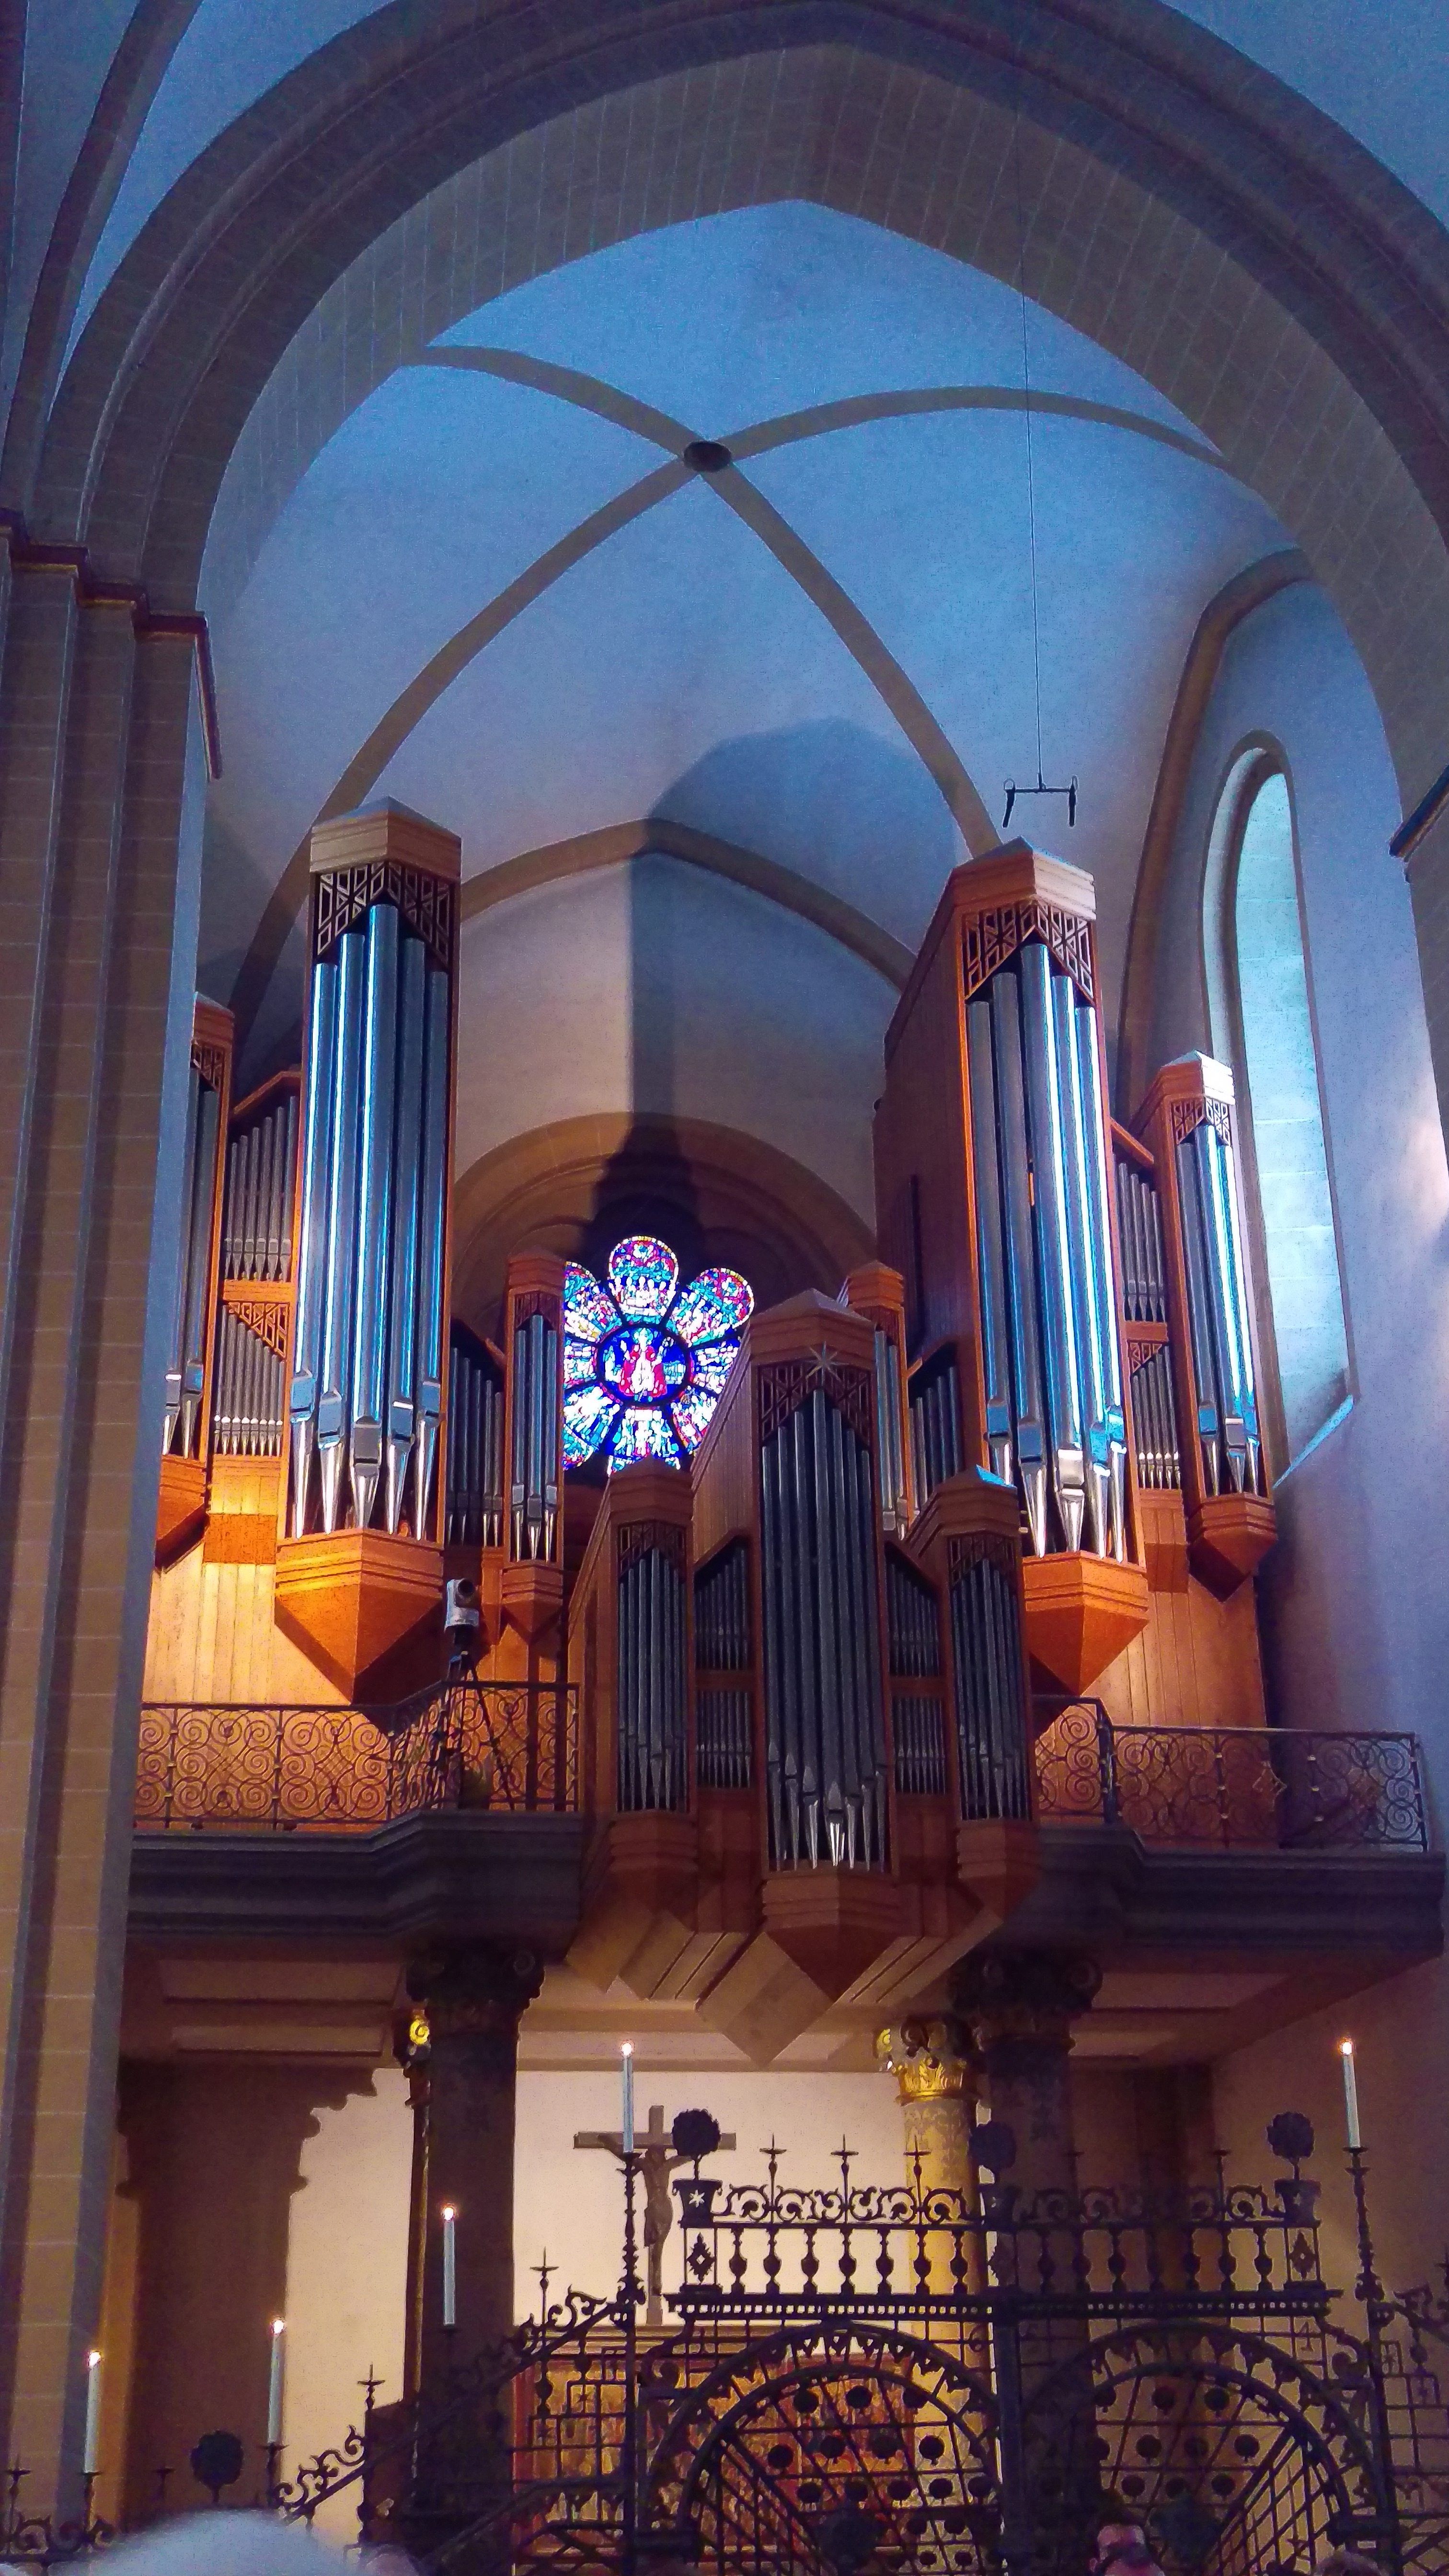 File:Domorgel Paderborn jpg - Wikimedia Commons